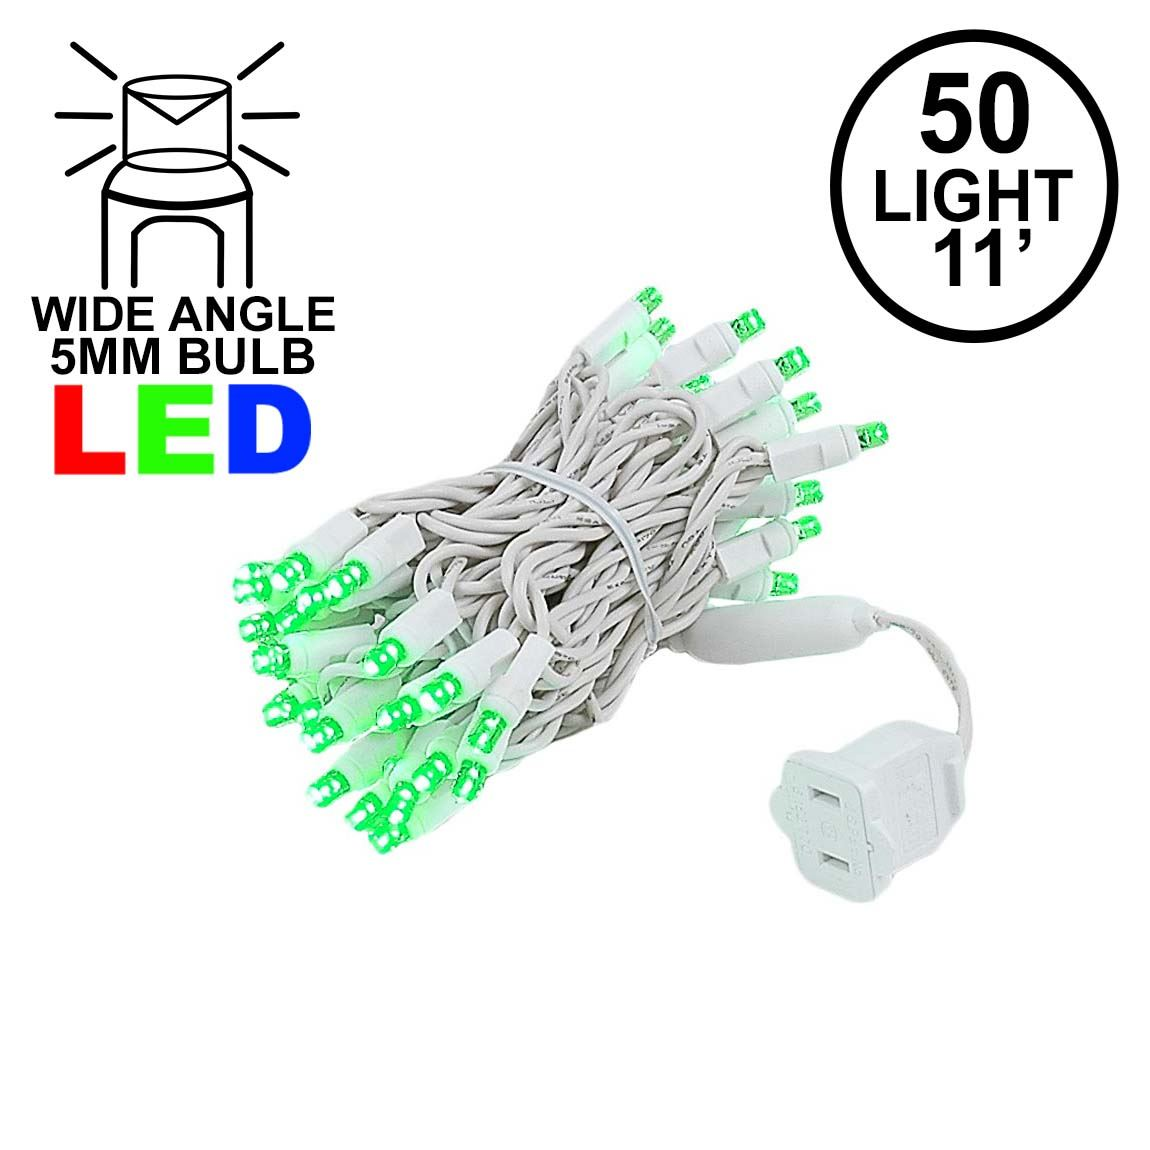 Picture of 50 LED Green LED Christmas Lights 11' Long on White Wire